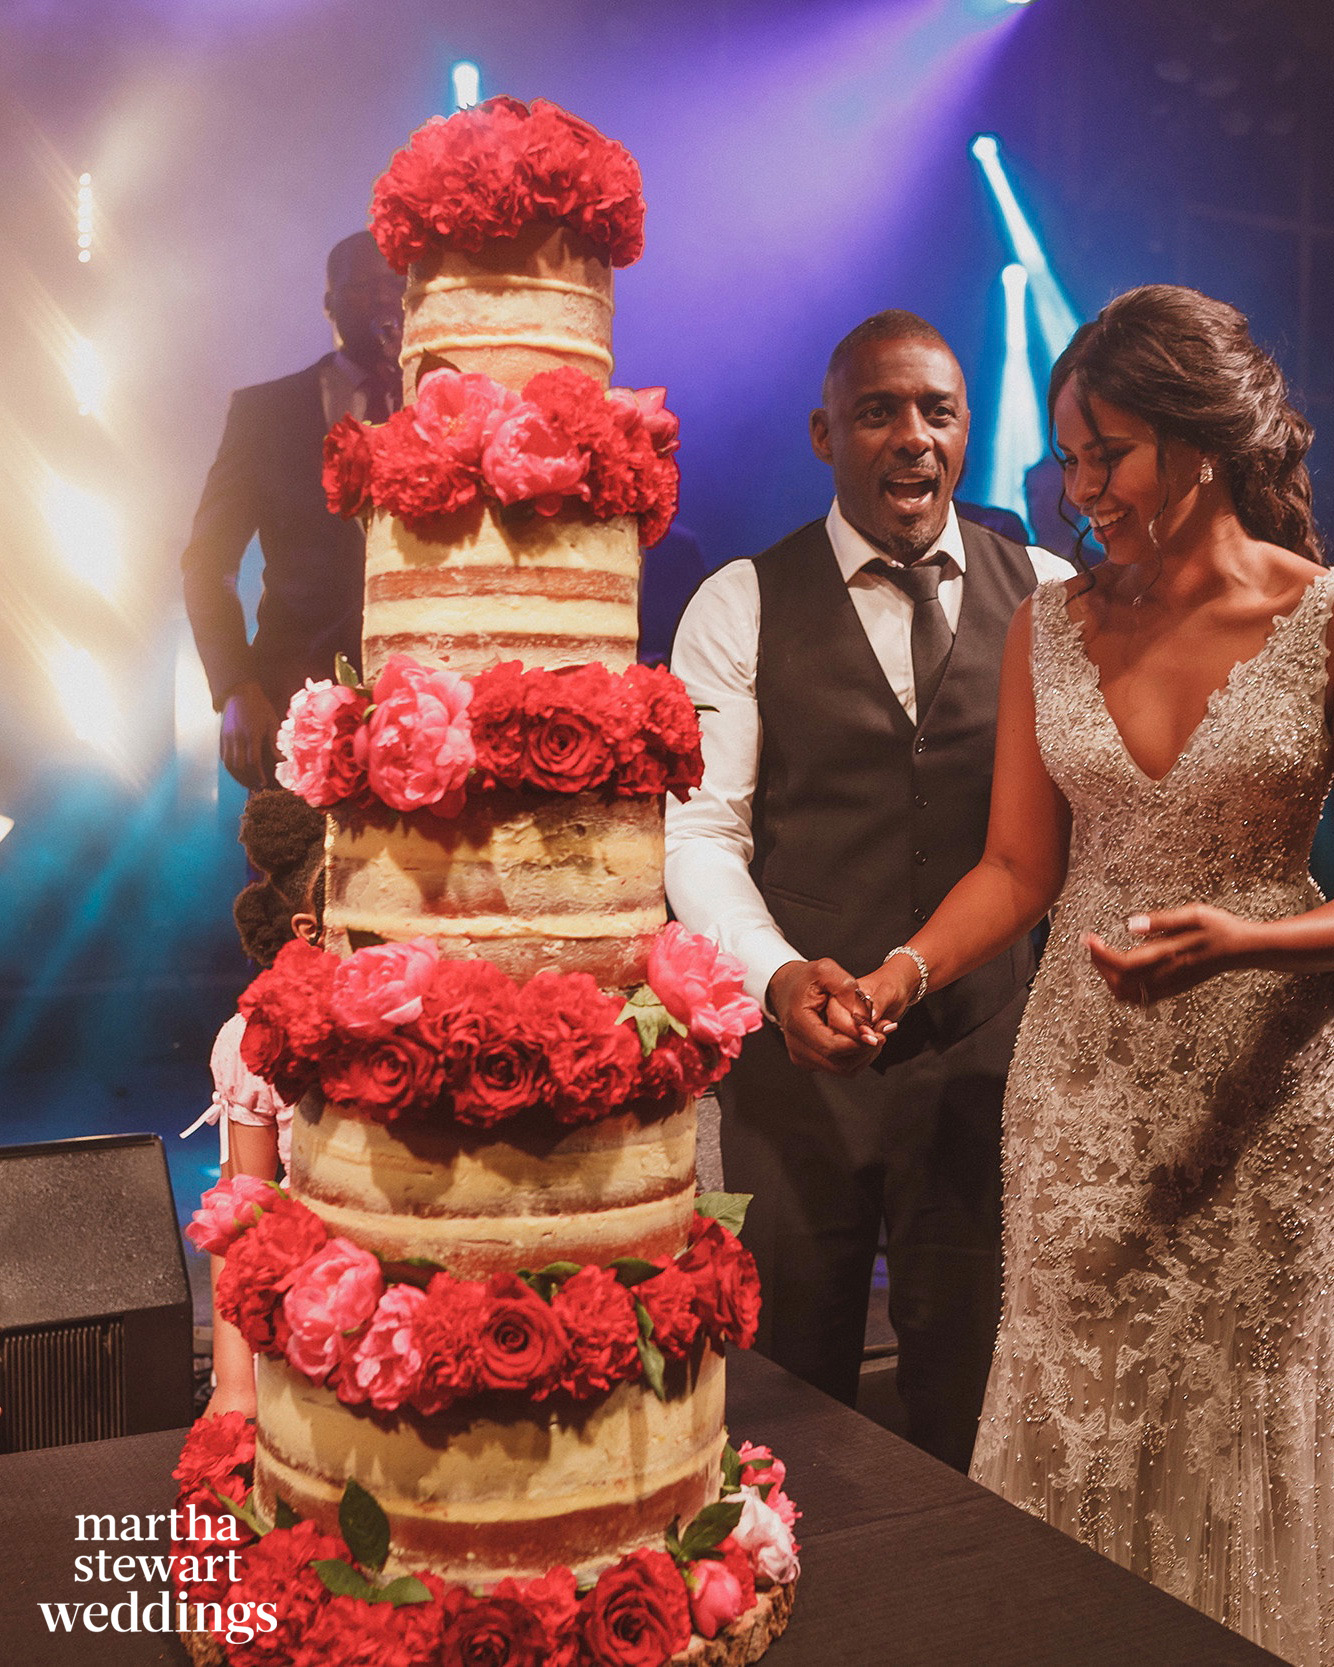 Exclusive: Idris and Sabrina Elba Share Never-Before-Seen Photos of Their Wedding Cake